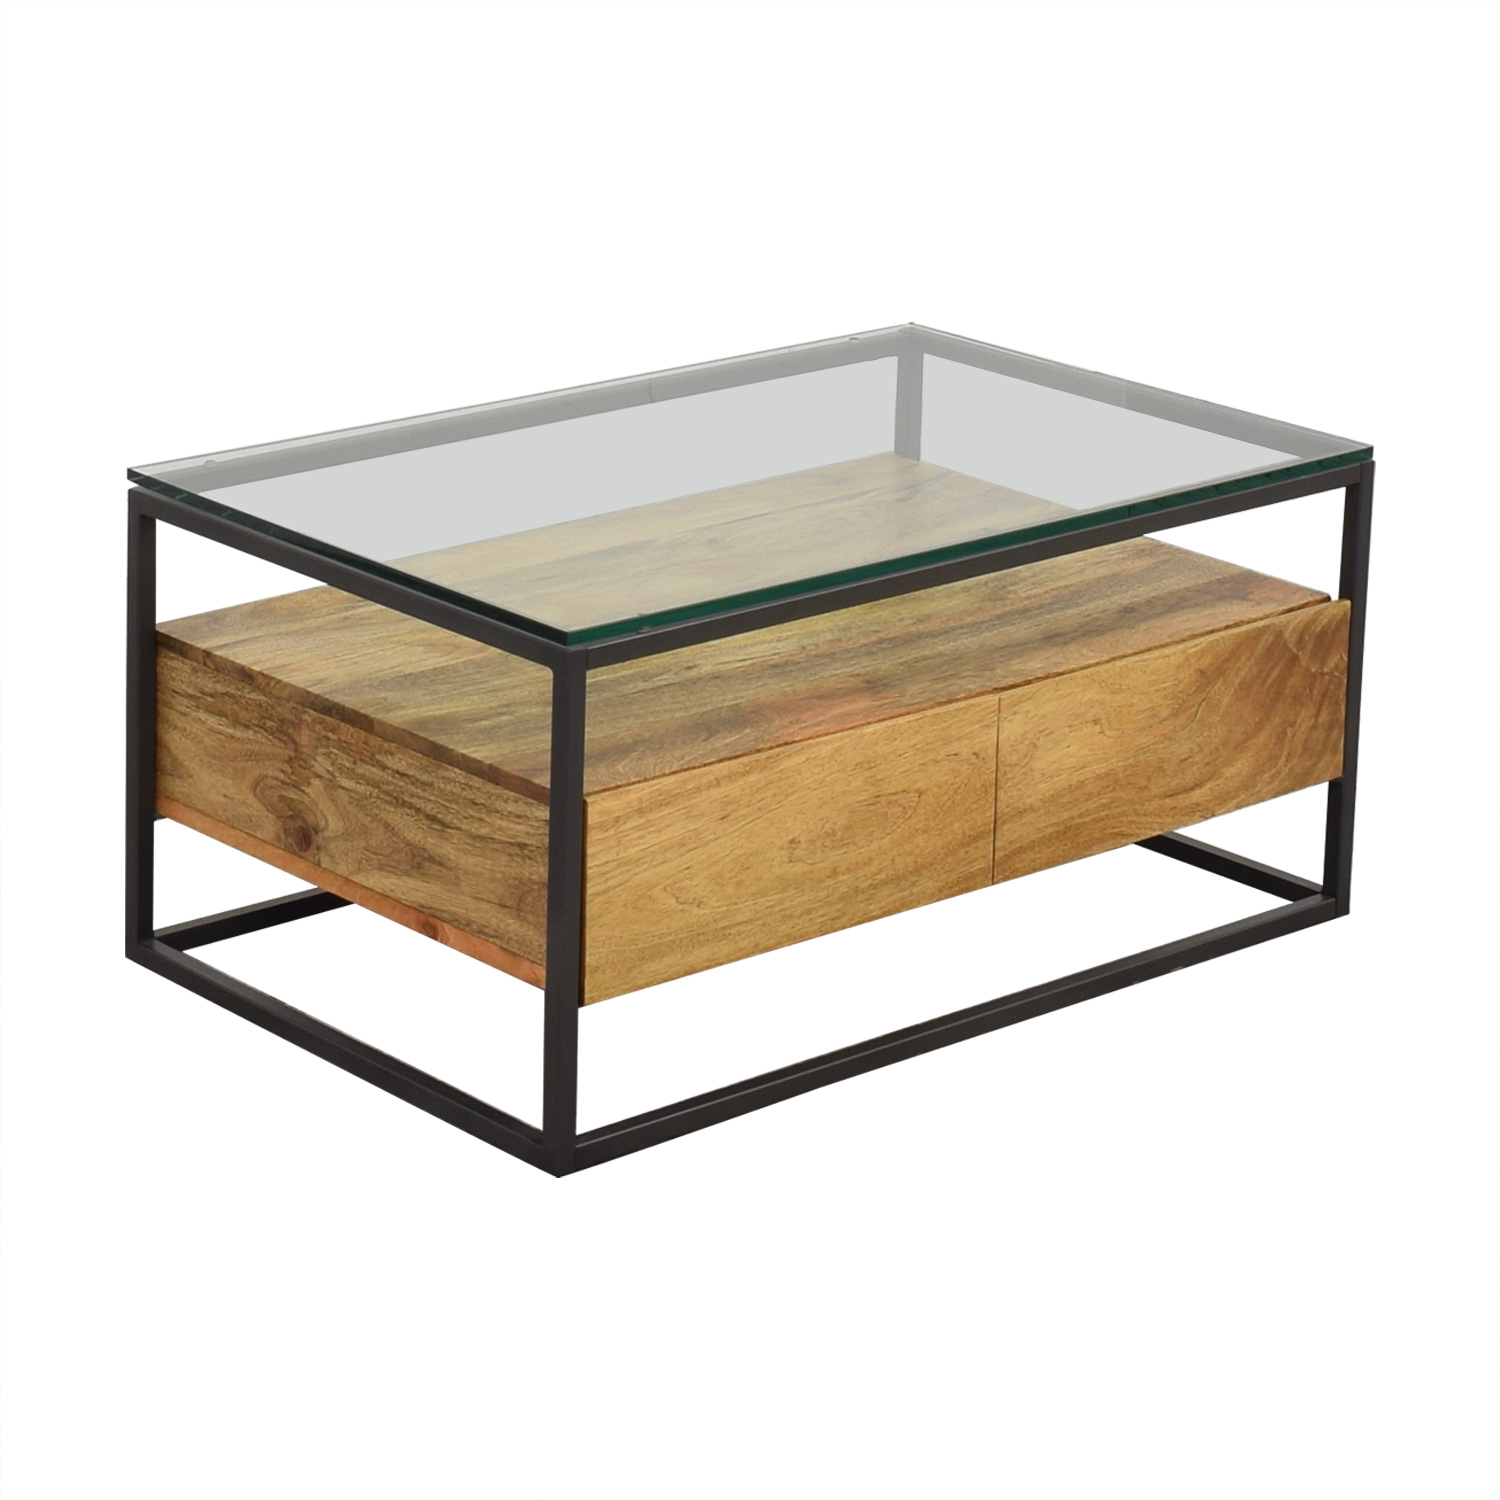 22 Off West Elm Box Frame Storage Coffee Table Tables